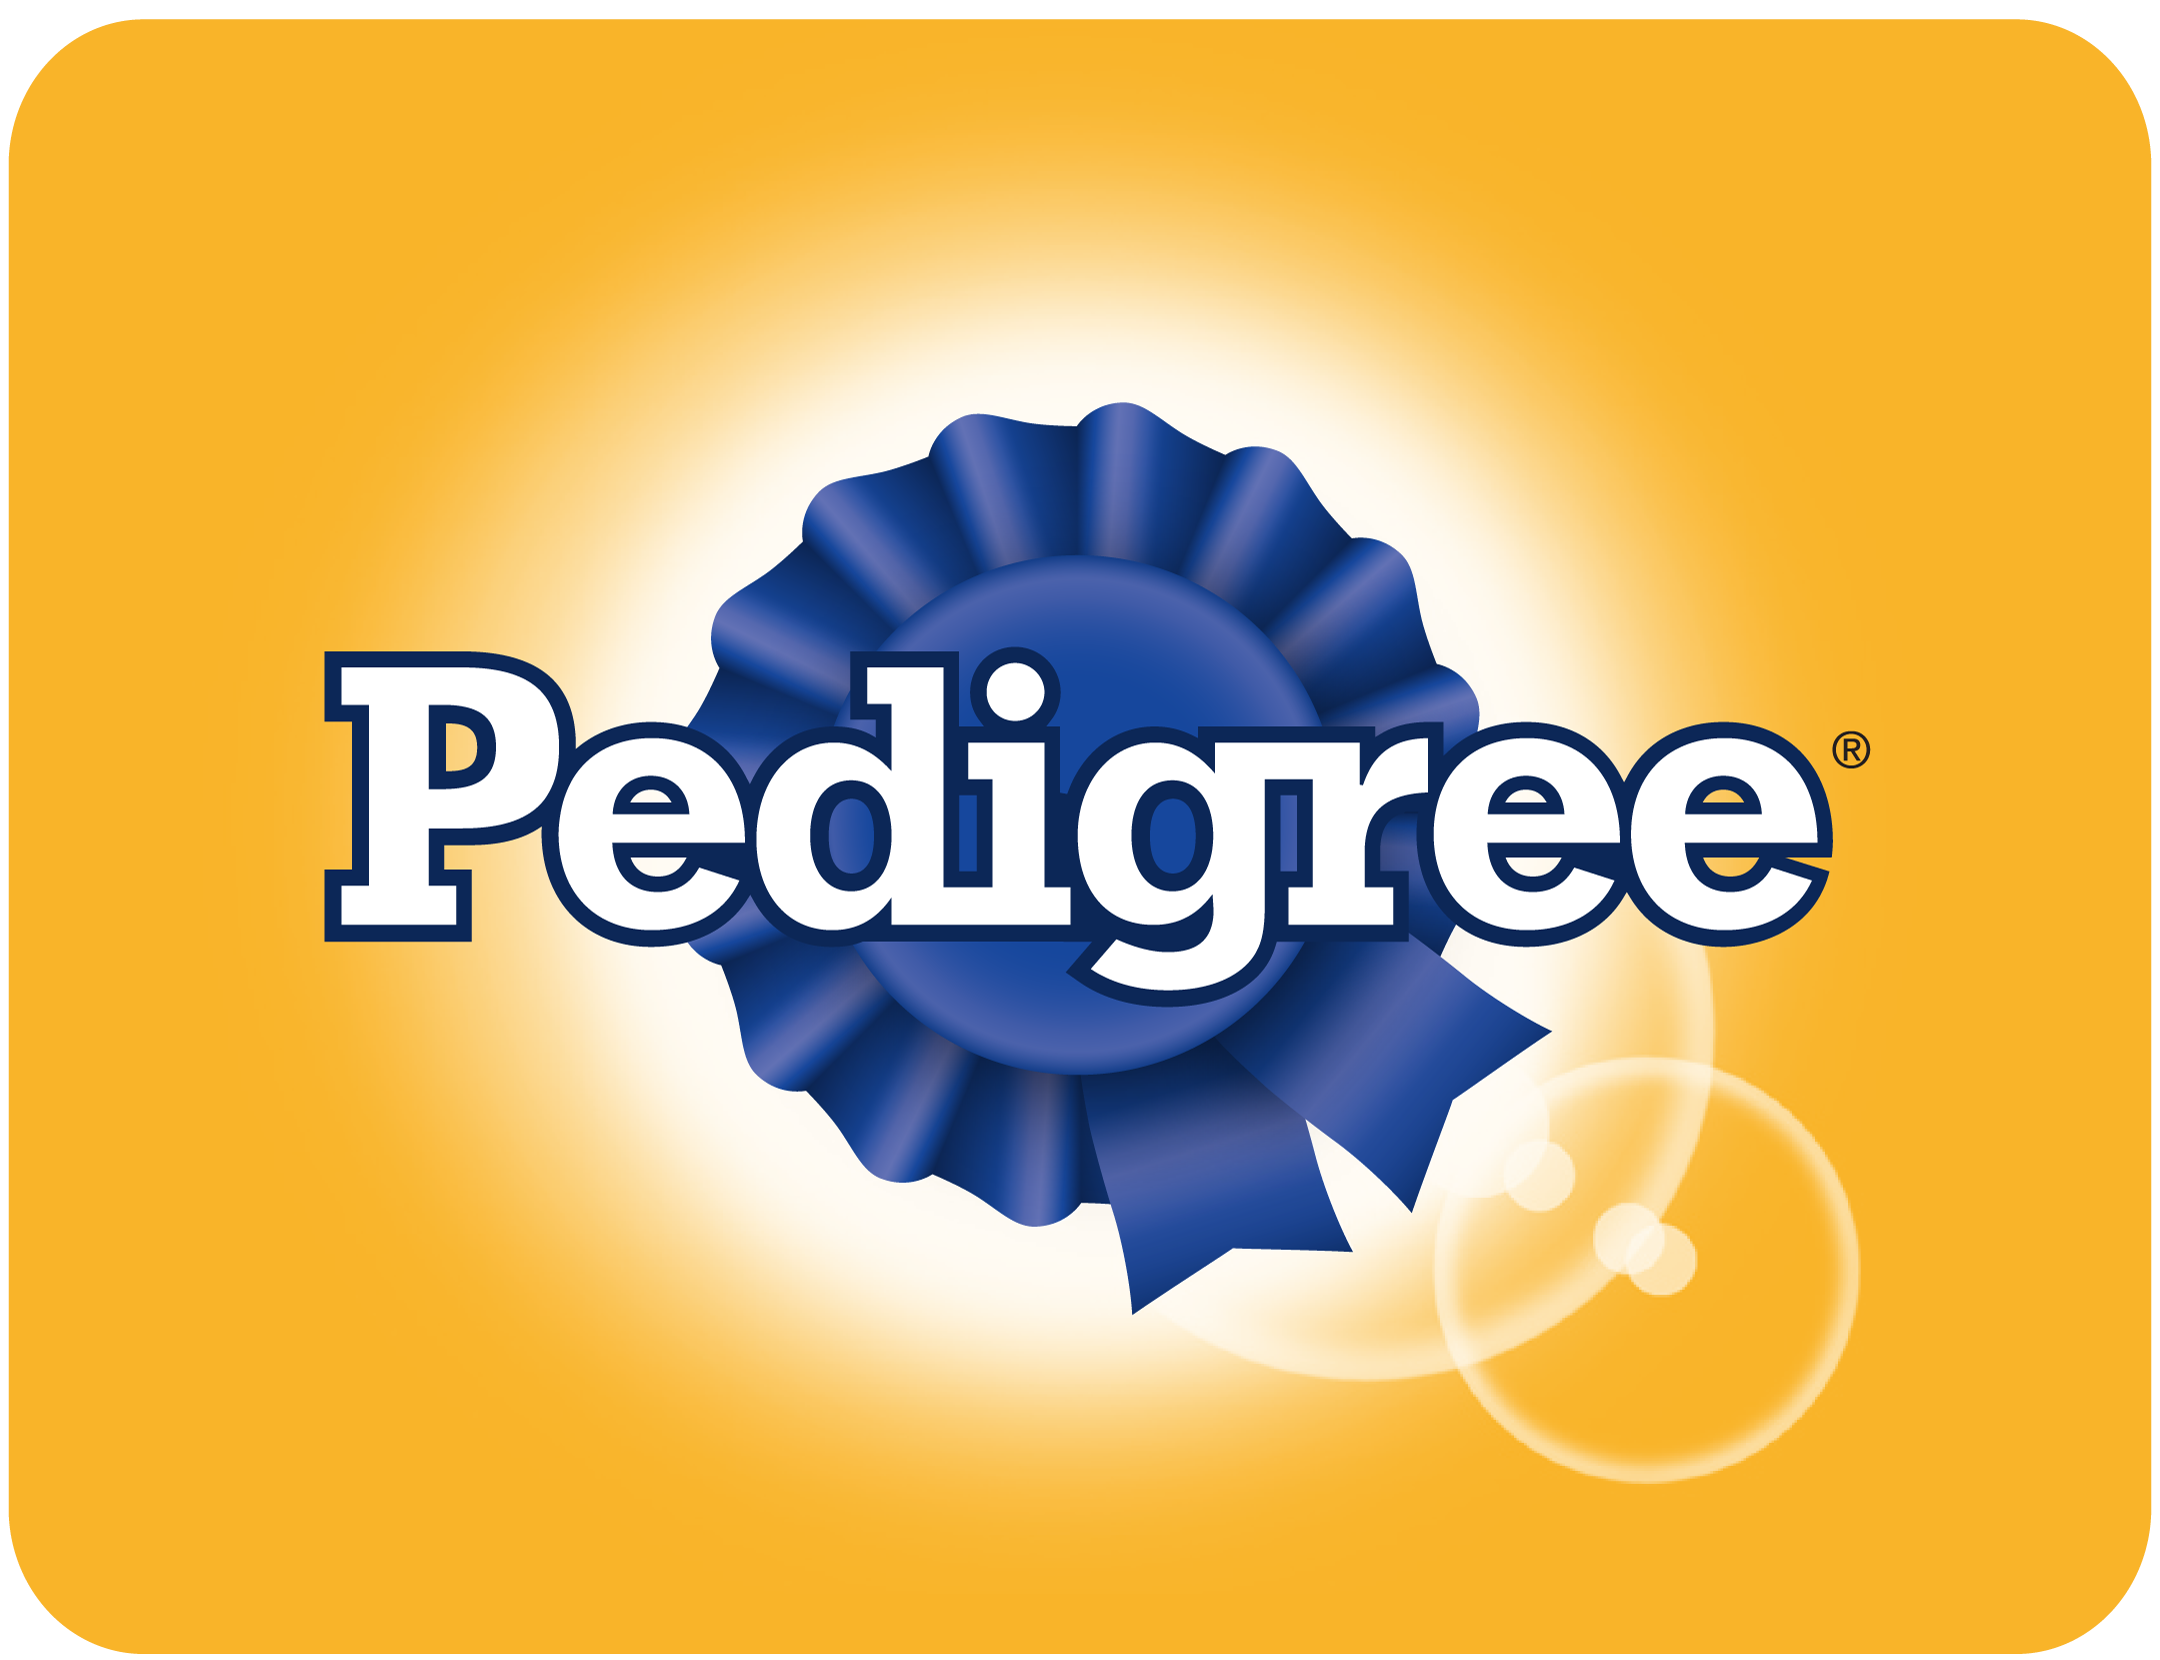 pedigree logo 1 - Pedigree Logo